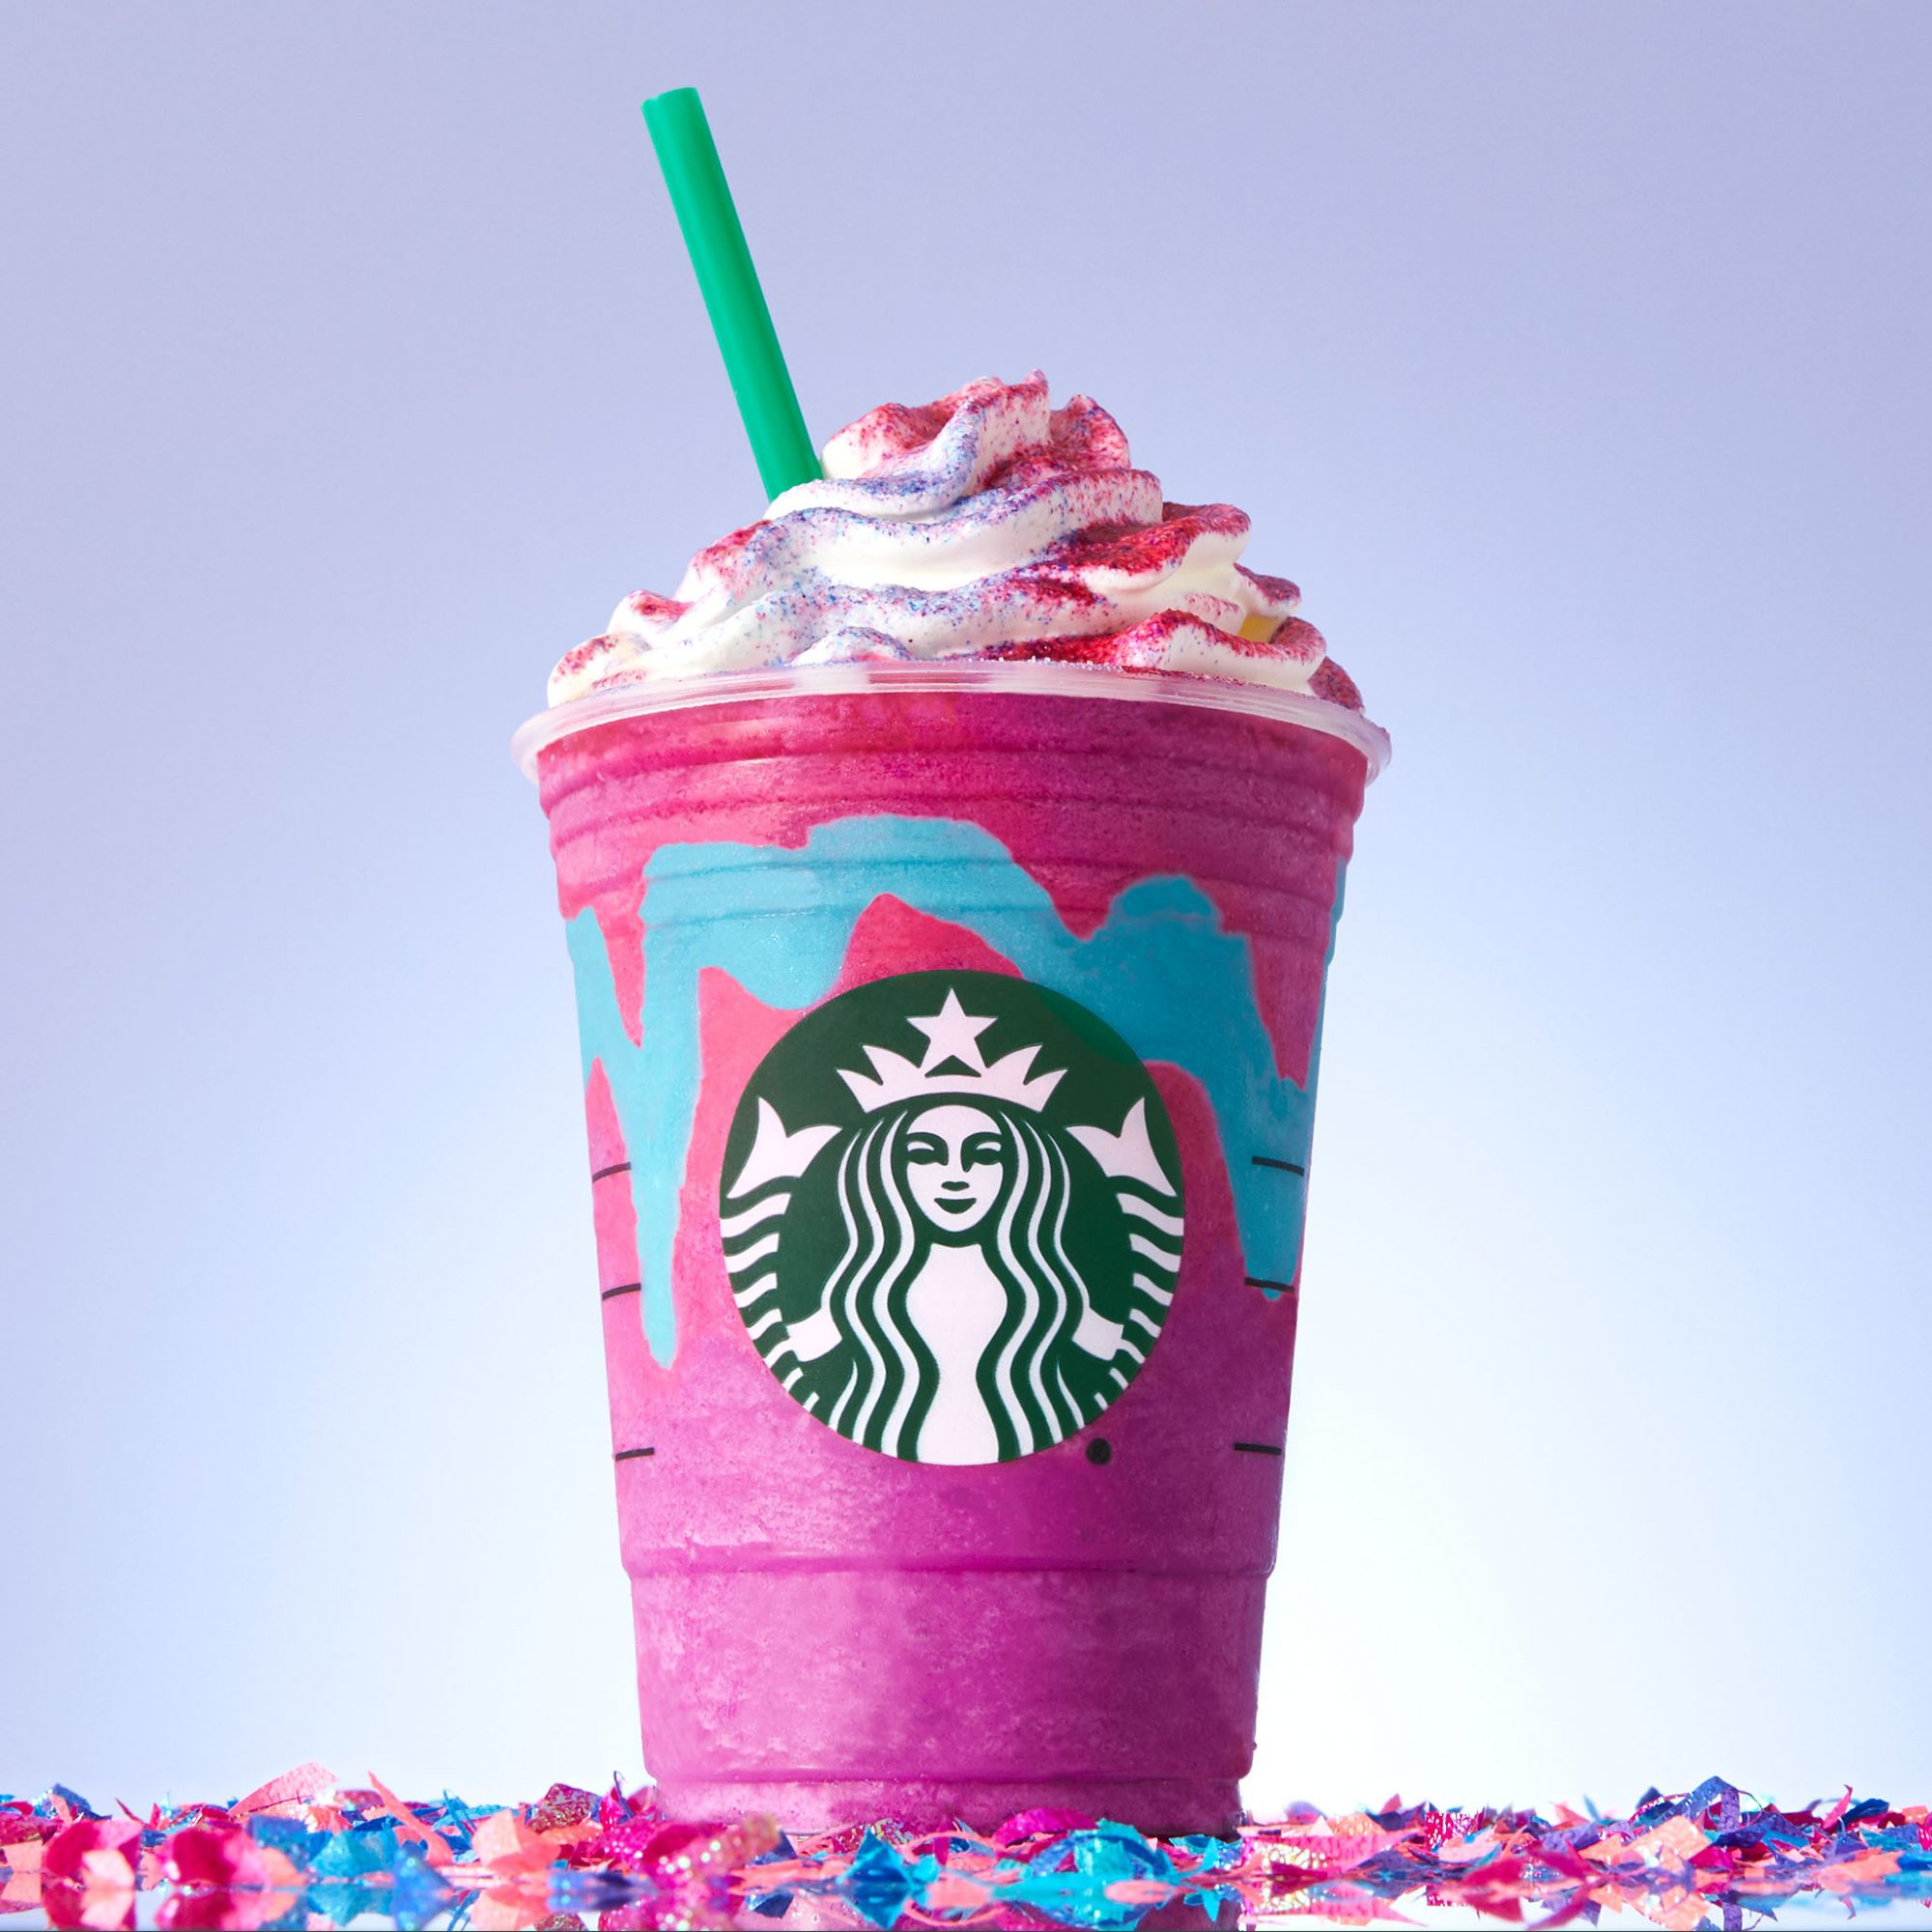 EC: Here's What Starbucks' Unicorn Frappuccino Actually Tastes Like